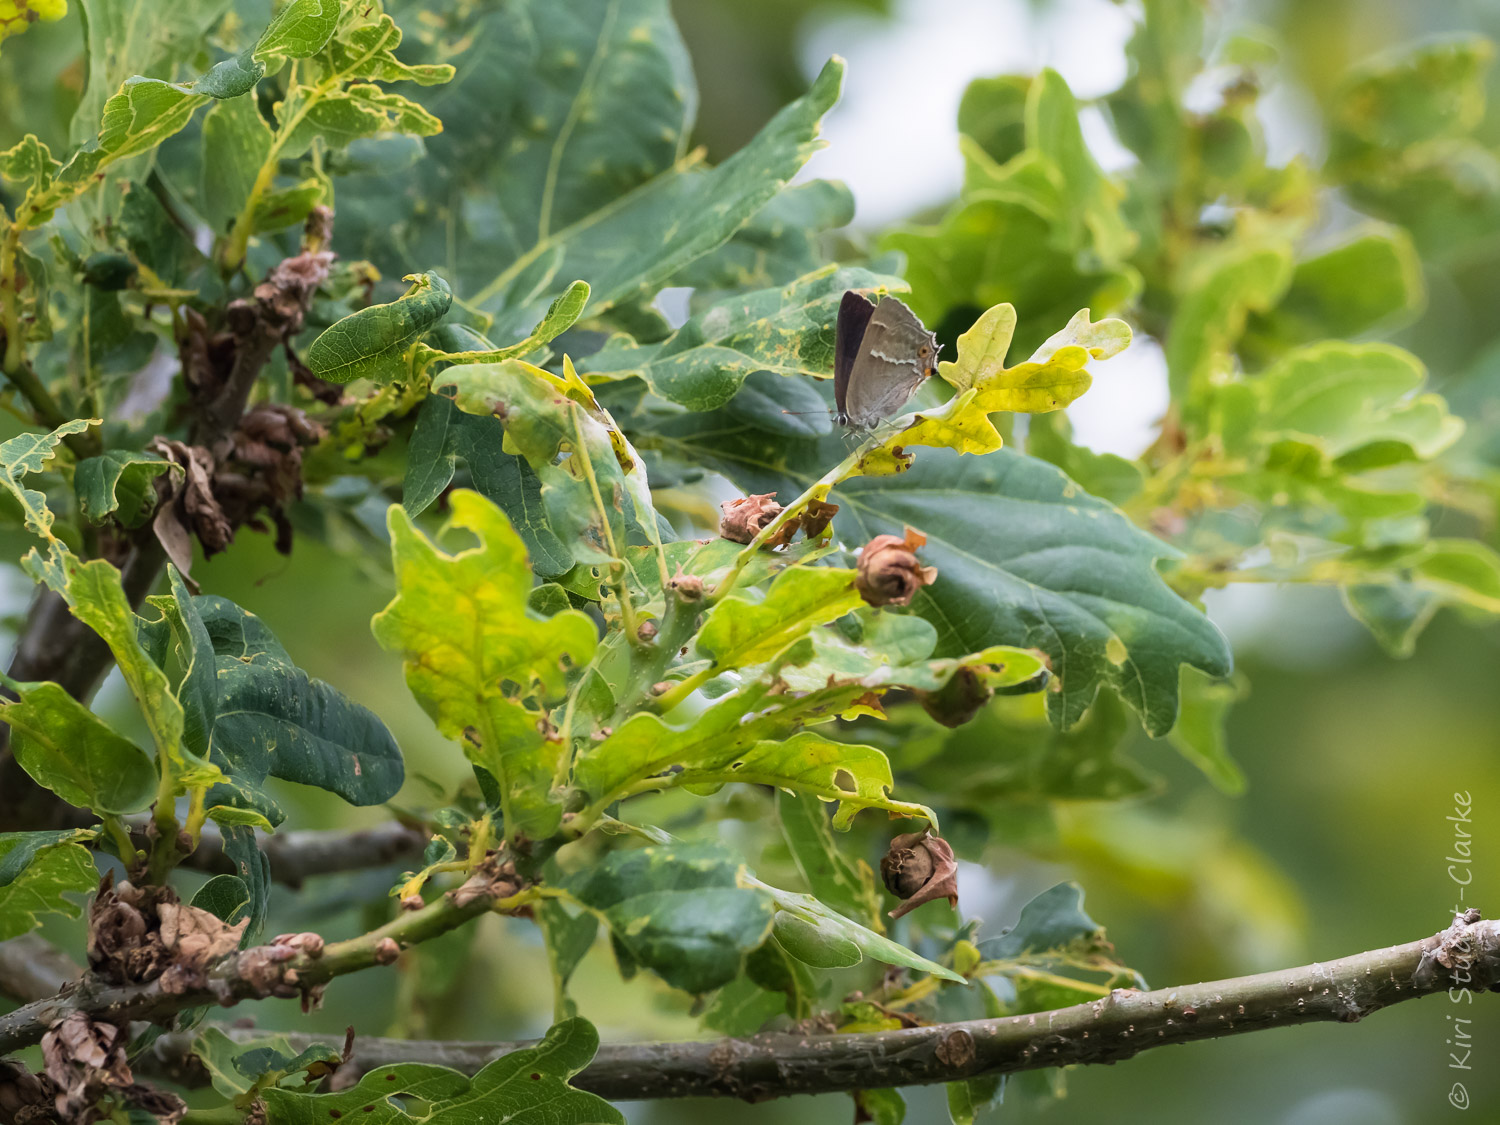 The Oak tree canopy is a habitat for both Purple Emperor and Purple Hairstreak butterflies, which both feed on aphid honeydew